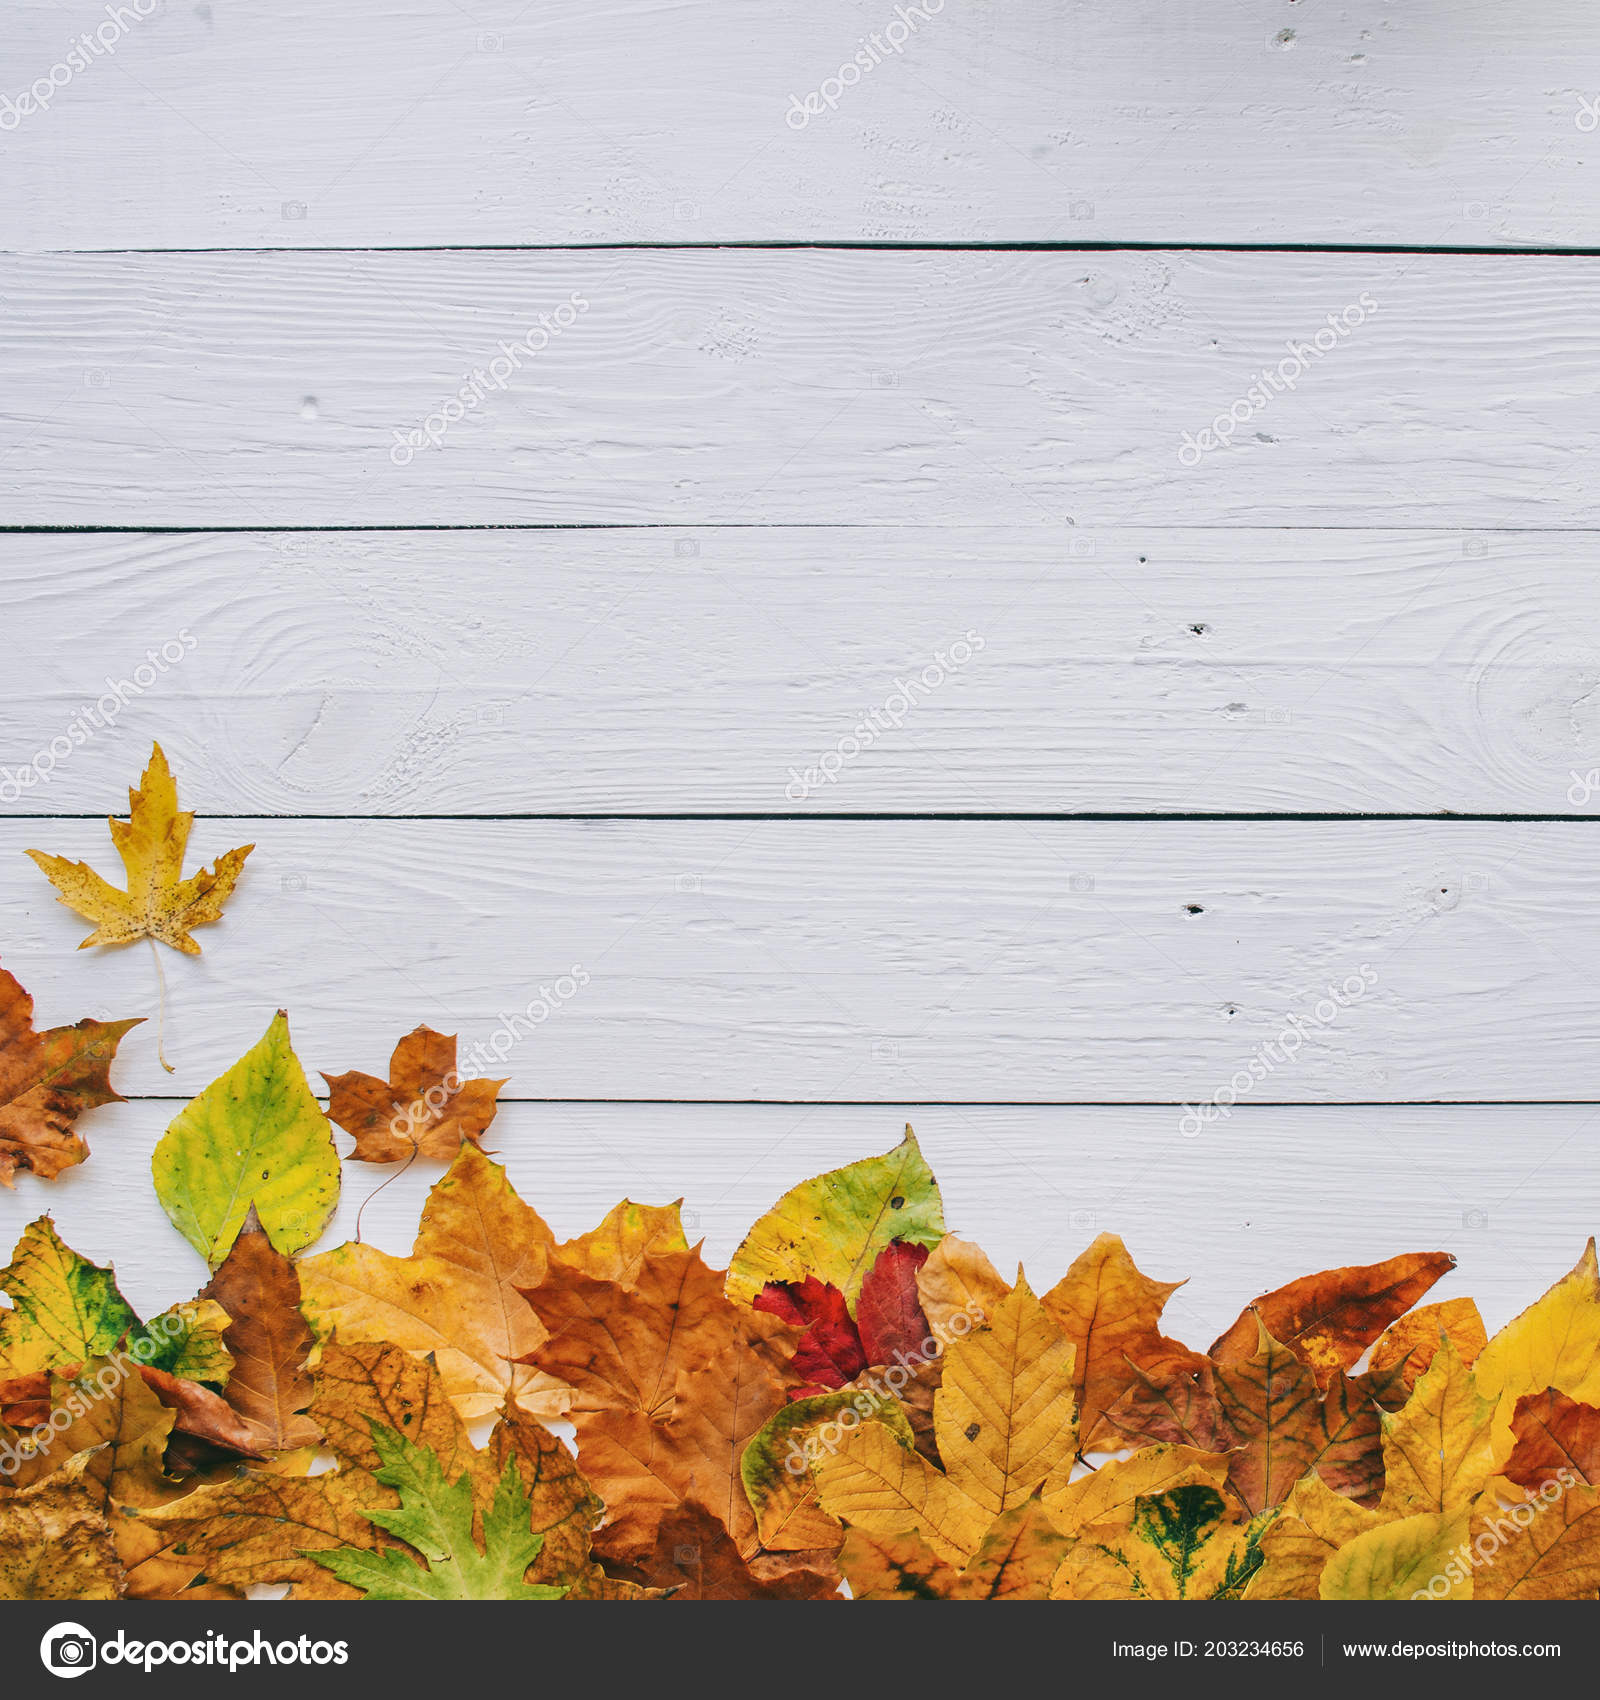 Colorful Autumn Dry Leaves Border Frame White Painted Rustic